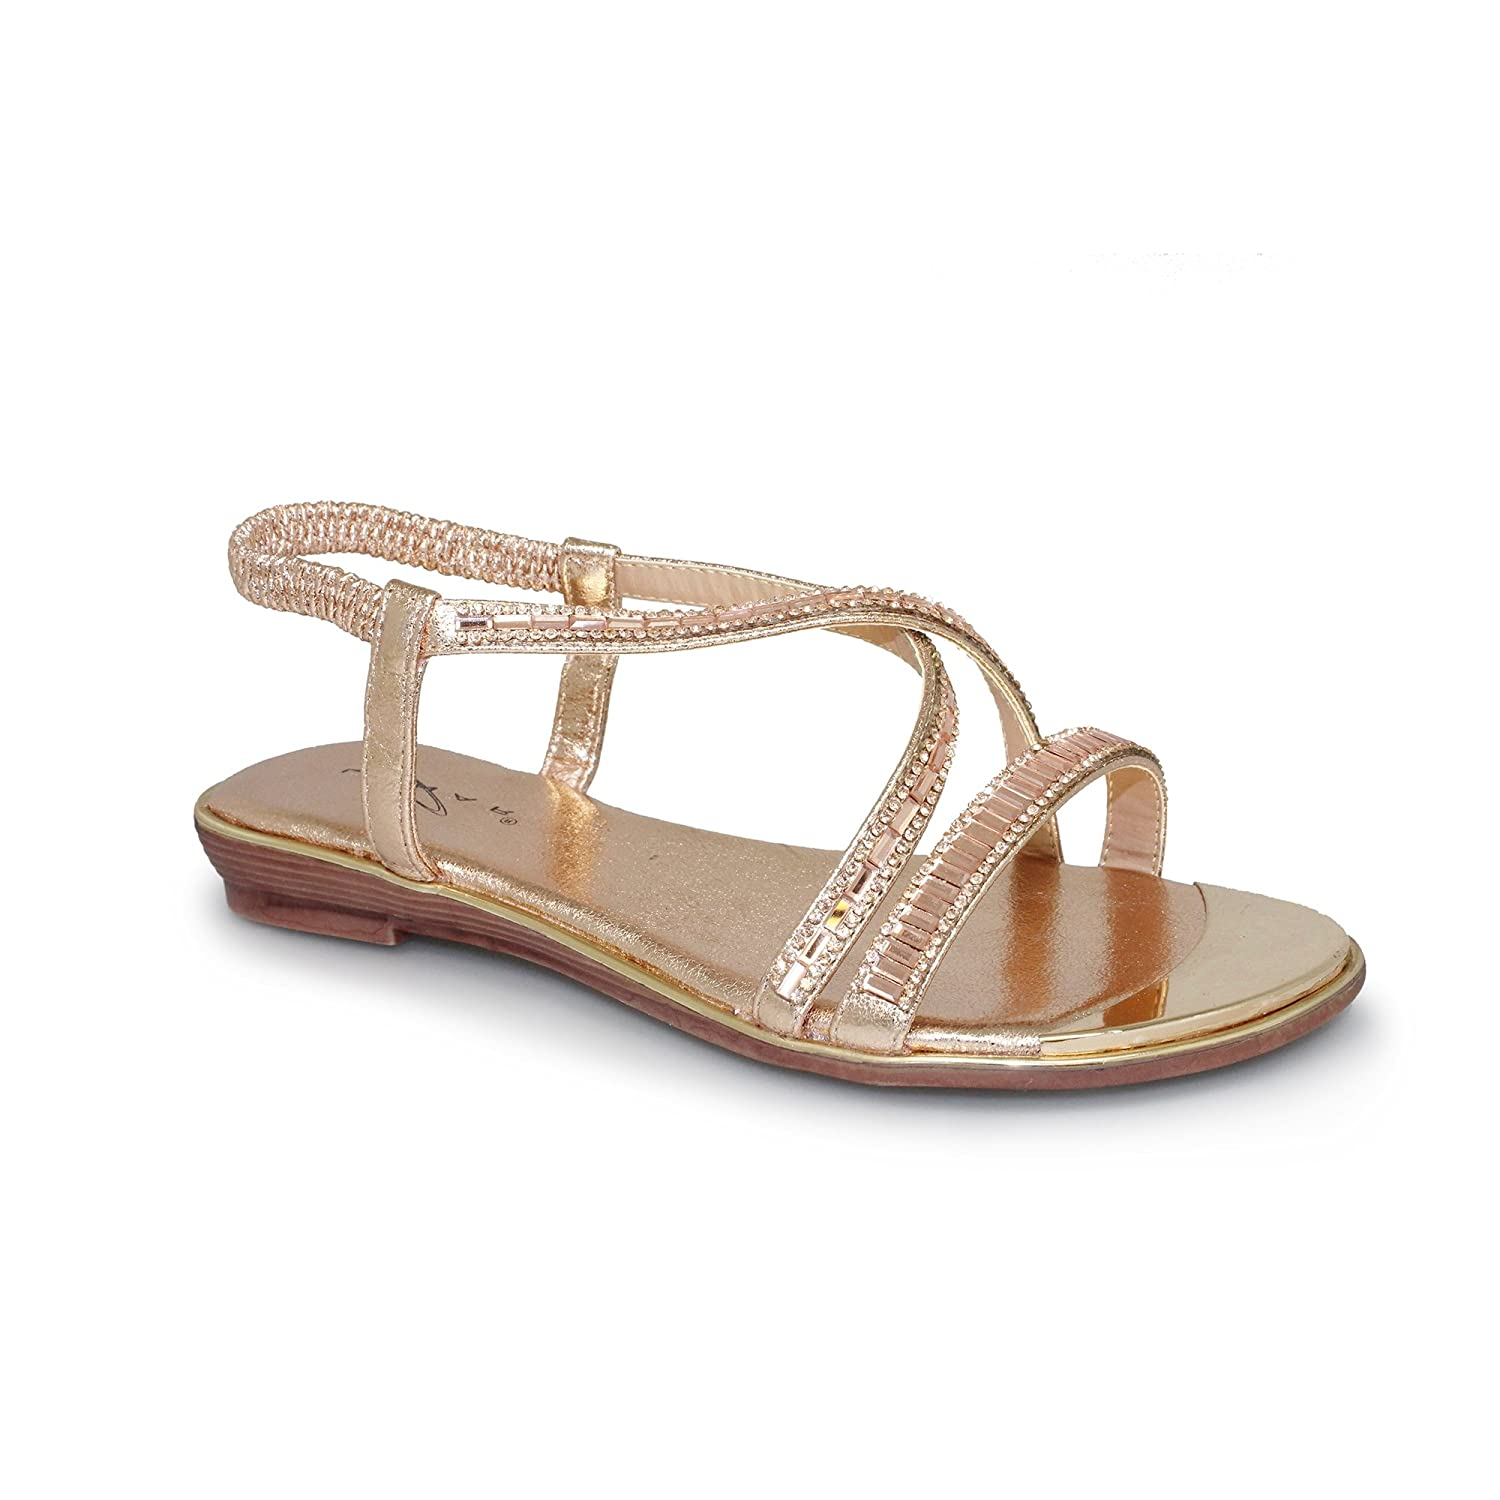 41e9695a961c8 Lunar Women s Camille Glitzy Flat Strap Sandal With Stunning Metal Toe  Plate